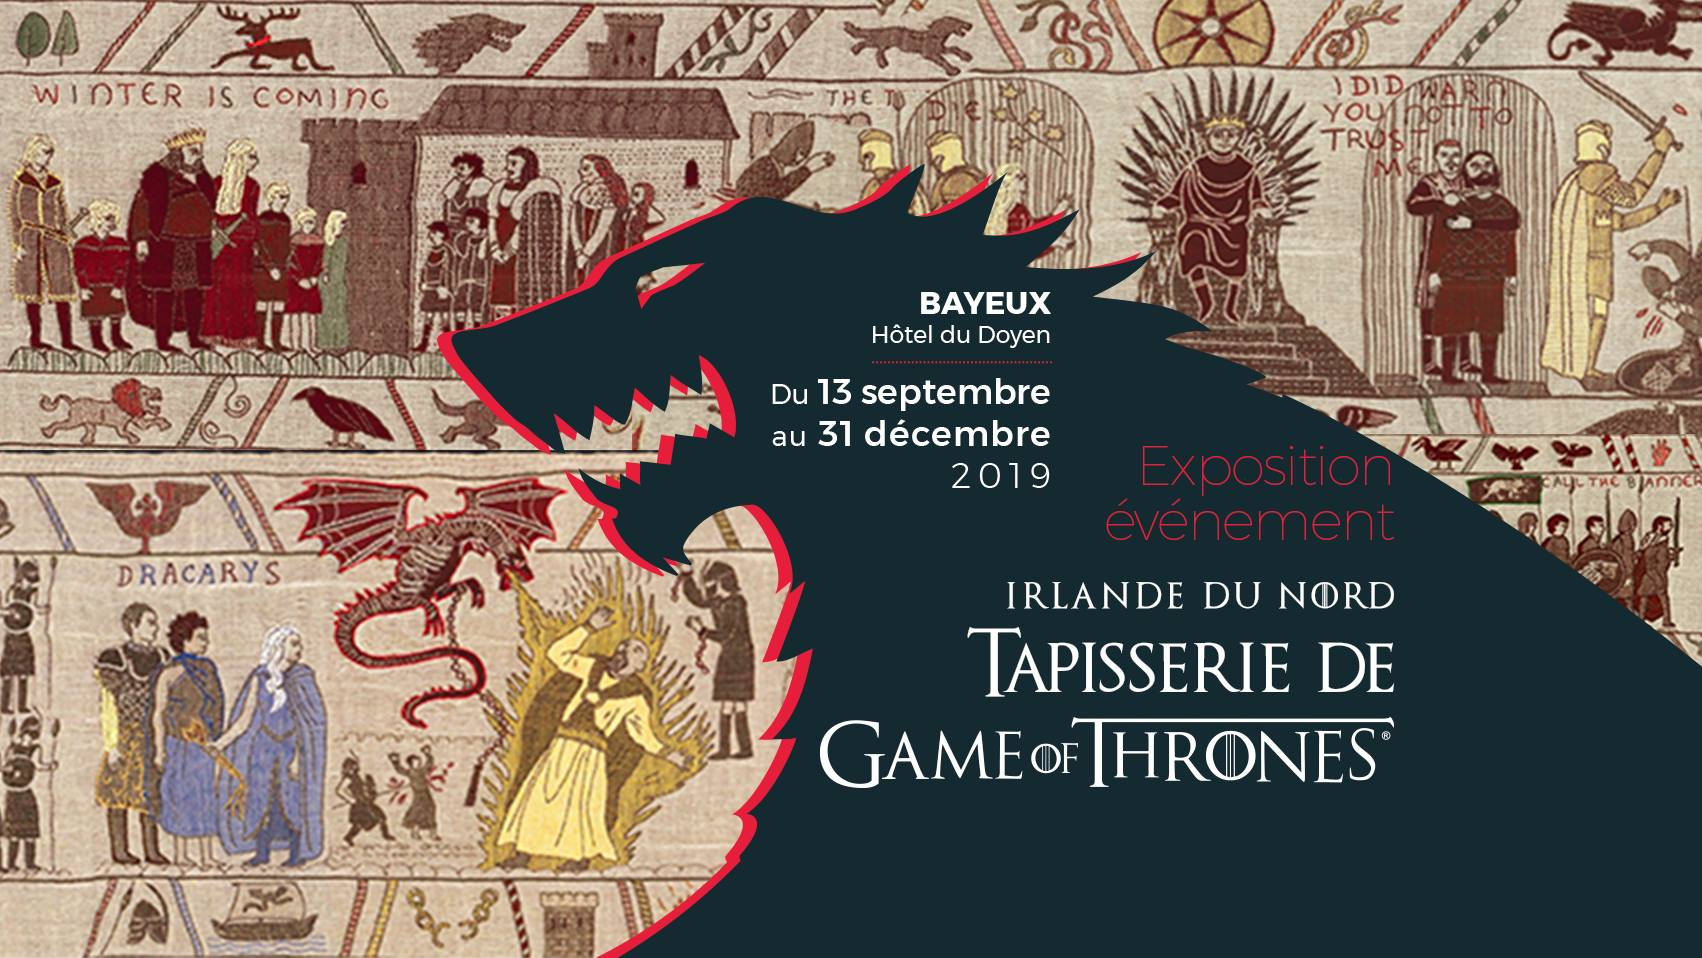 Photo de Nocturne & showcase - Exposition Tapisserie Game of Thrones®